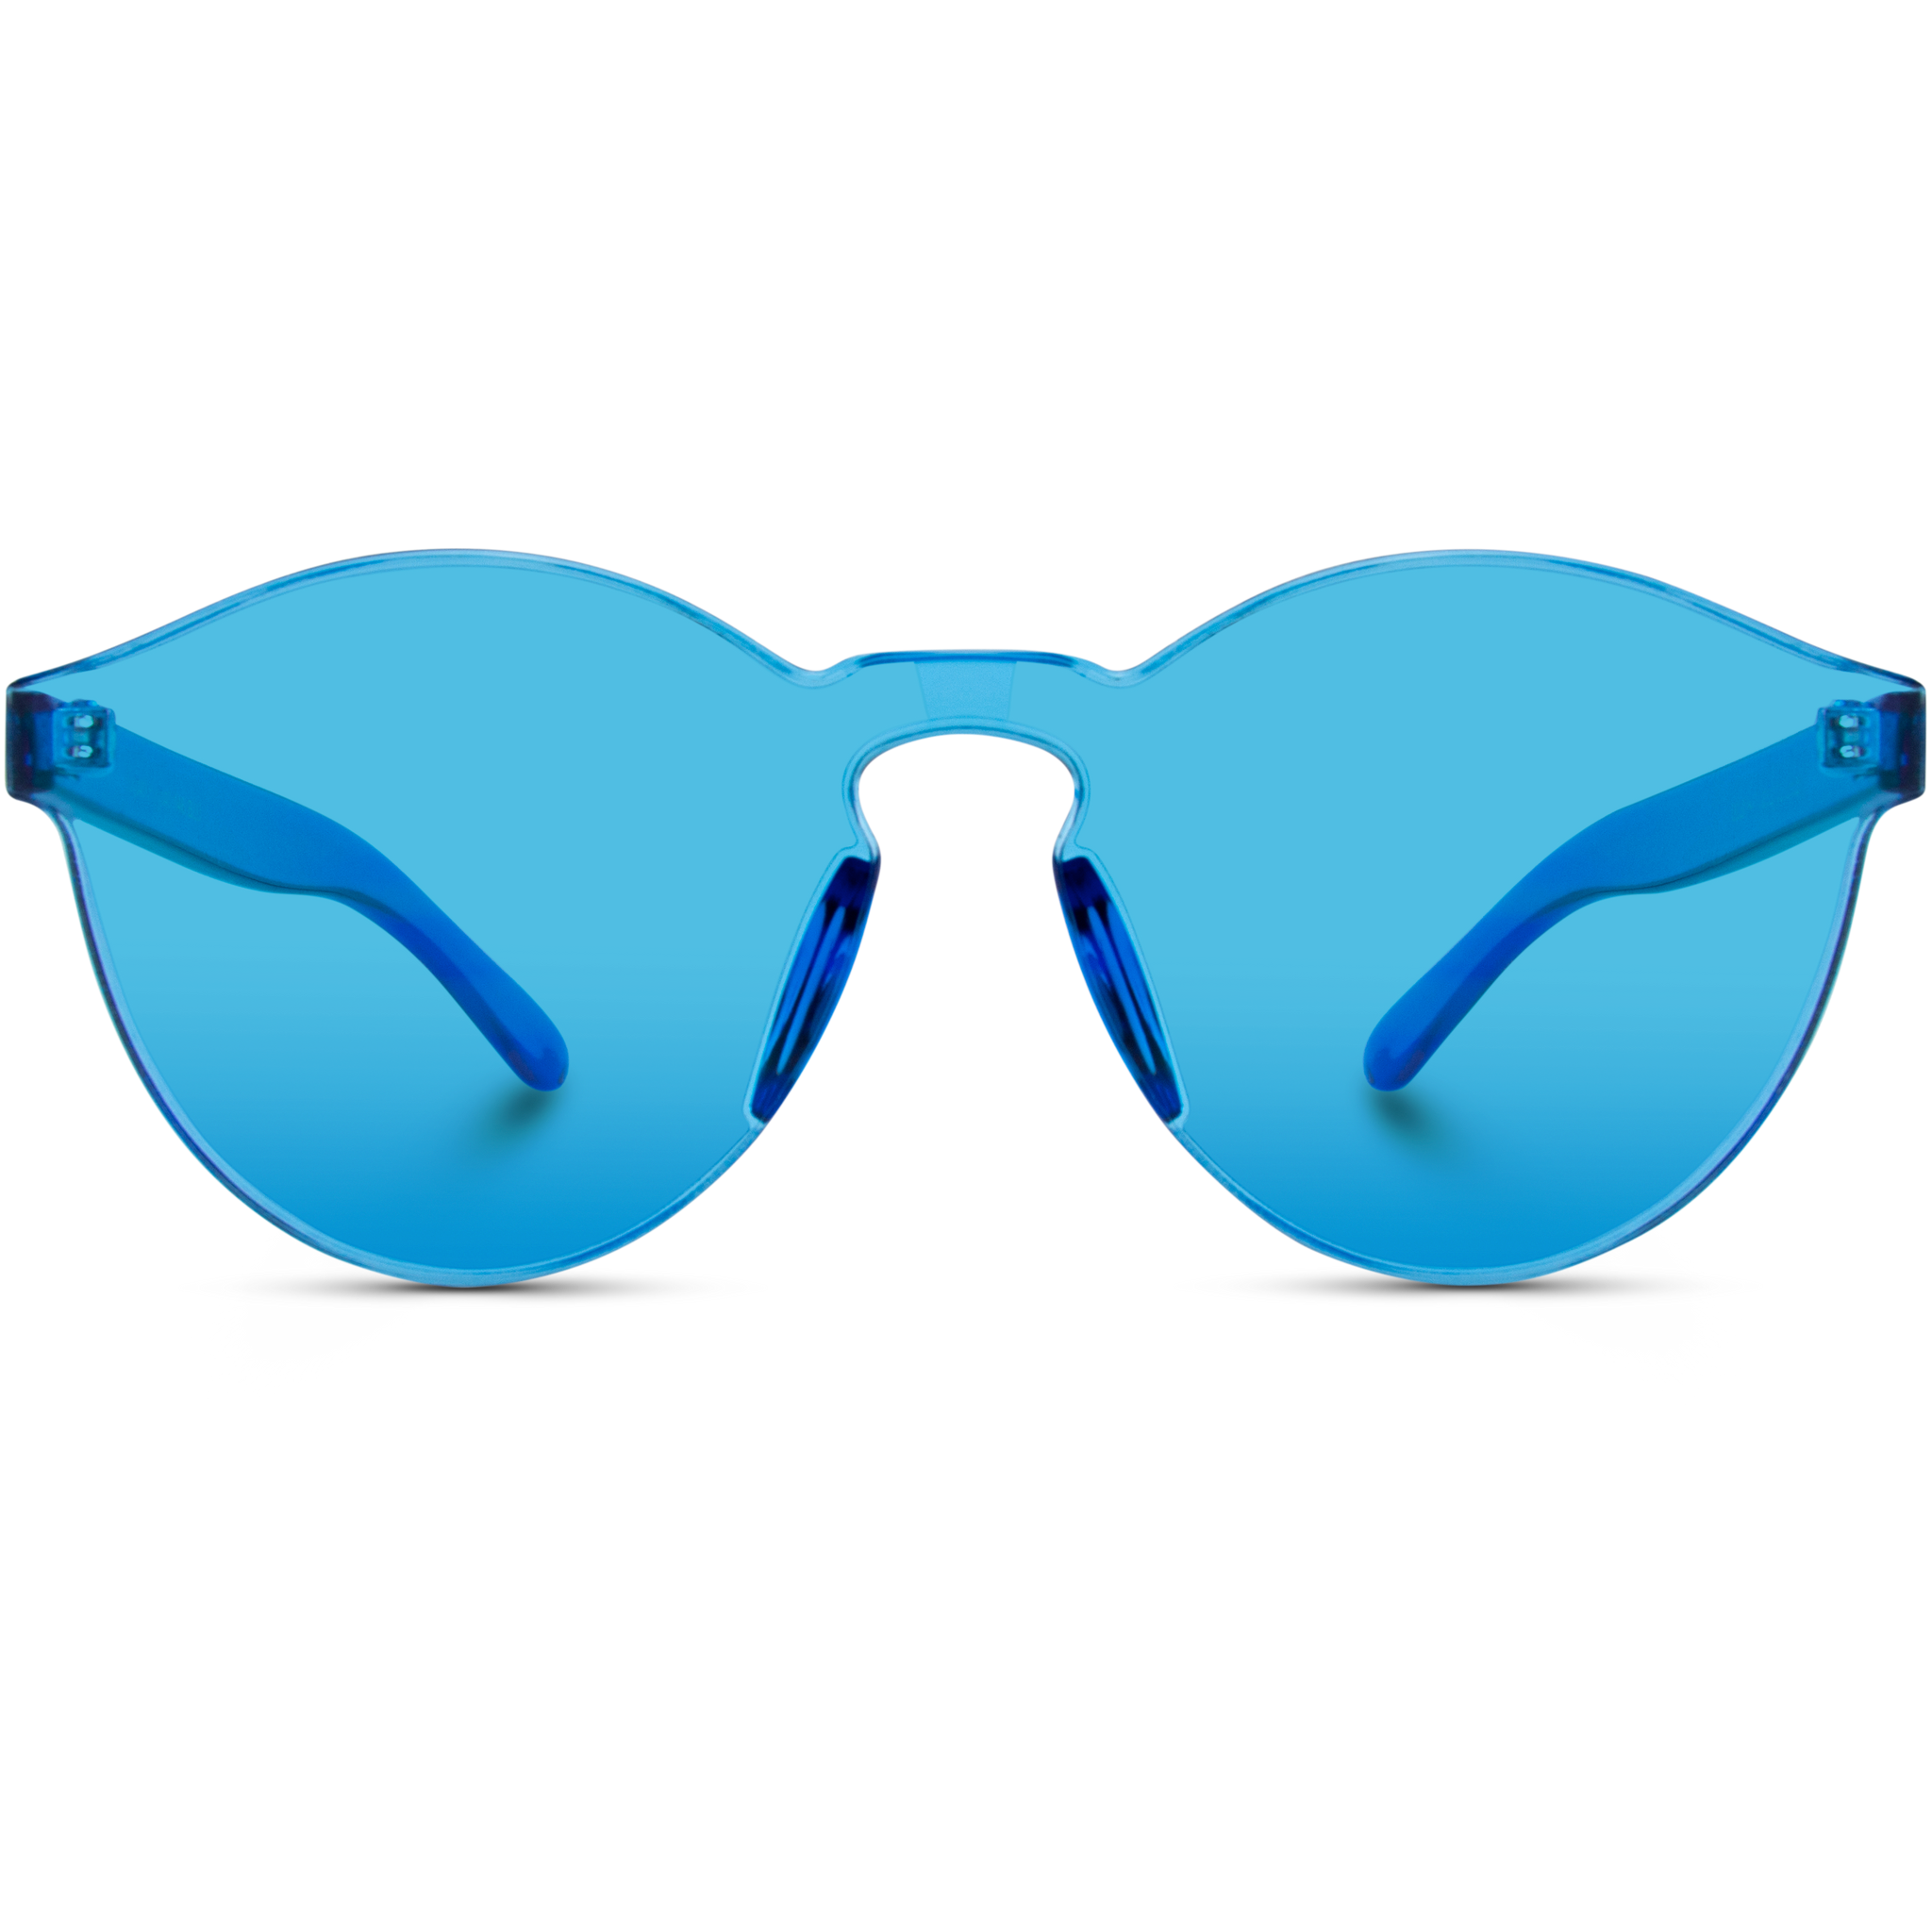 blue tinted round sunglasses for women